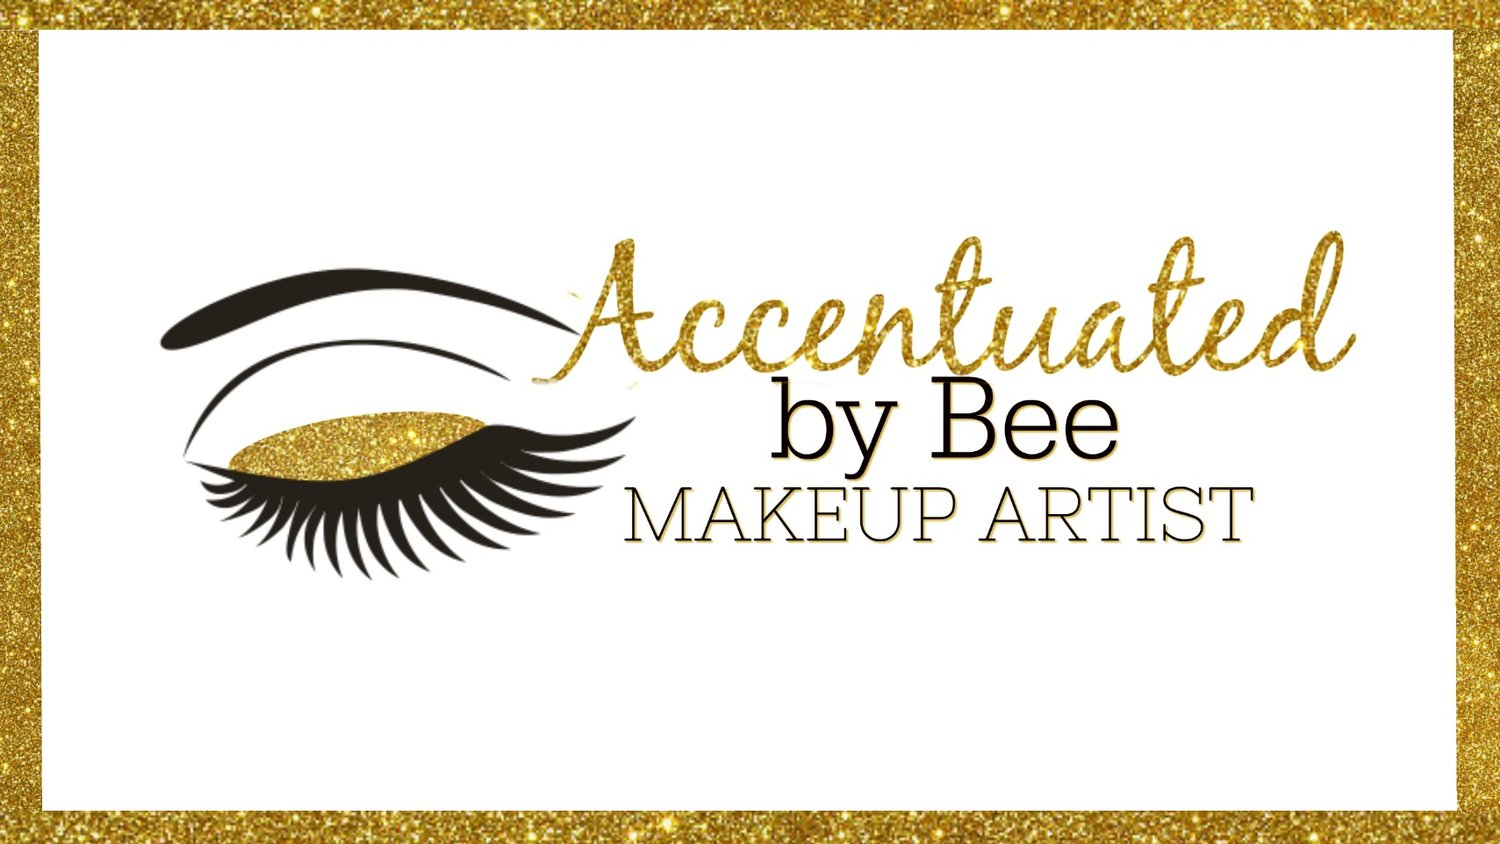 Accentuated by Bee